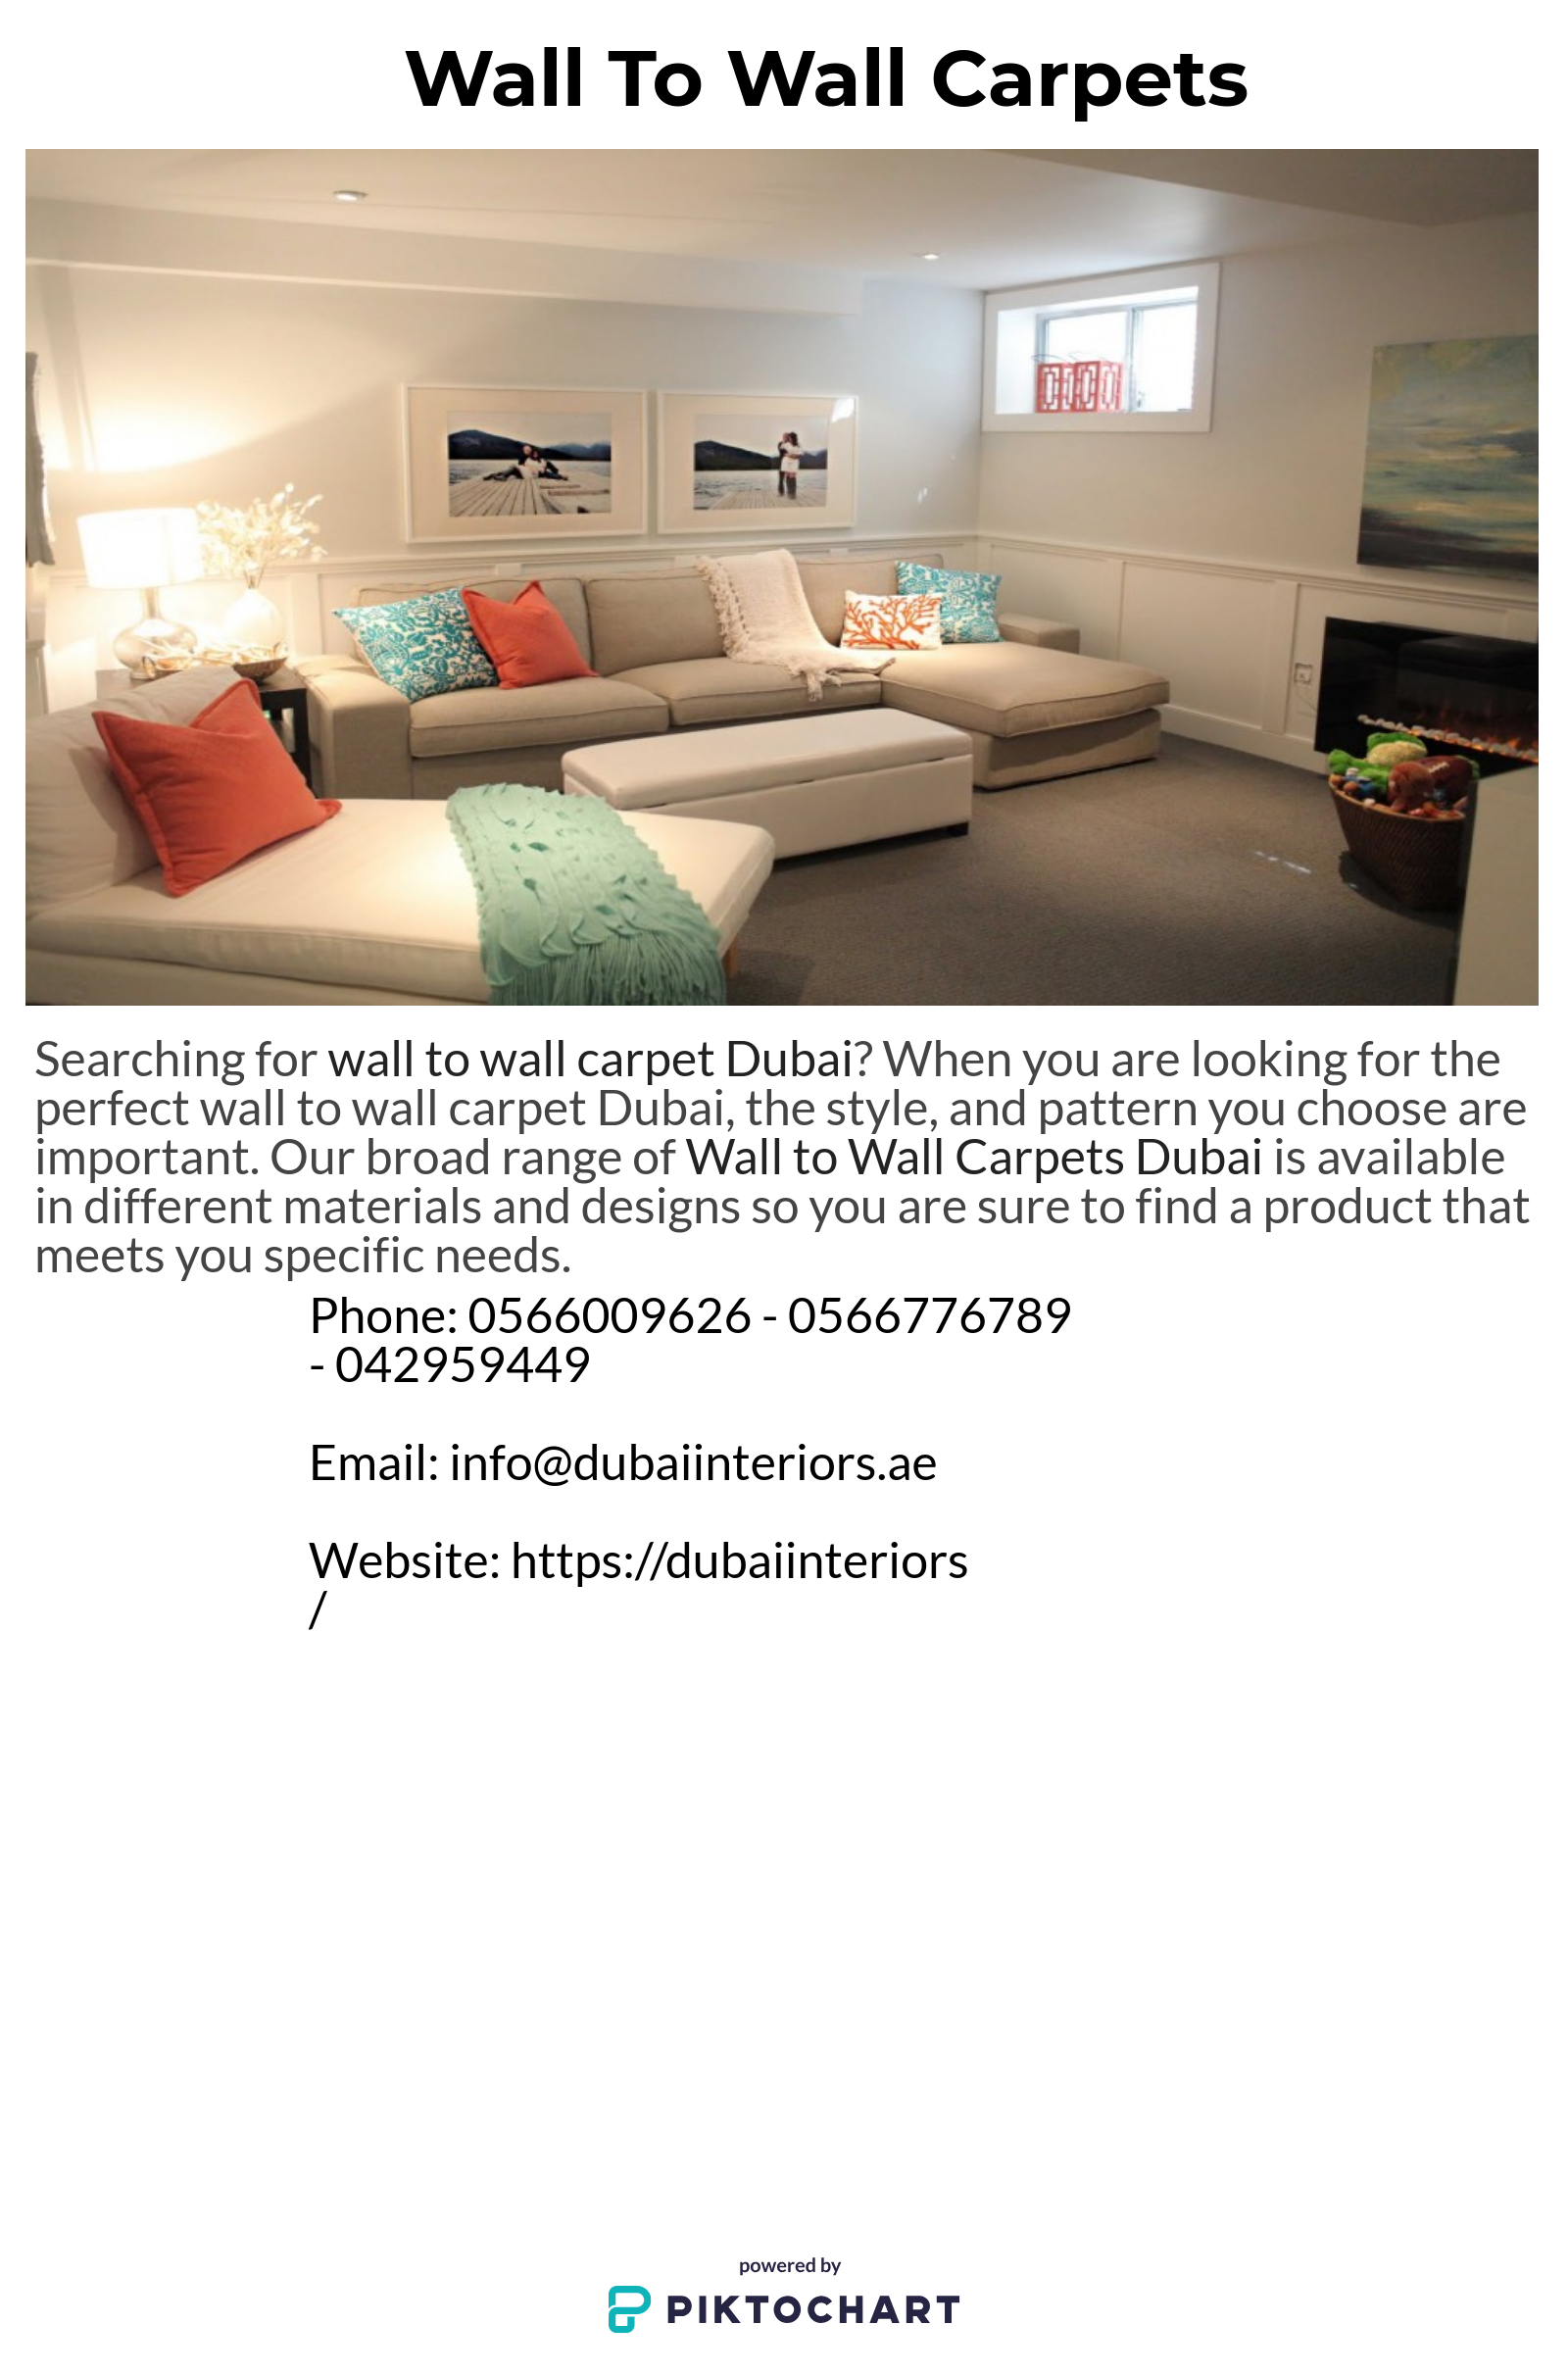 Searching For Wall To Wall Carpet Dubai When You Are Looking For